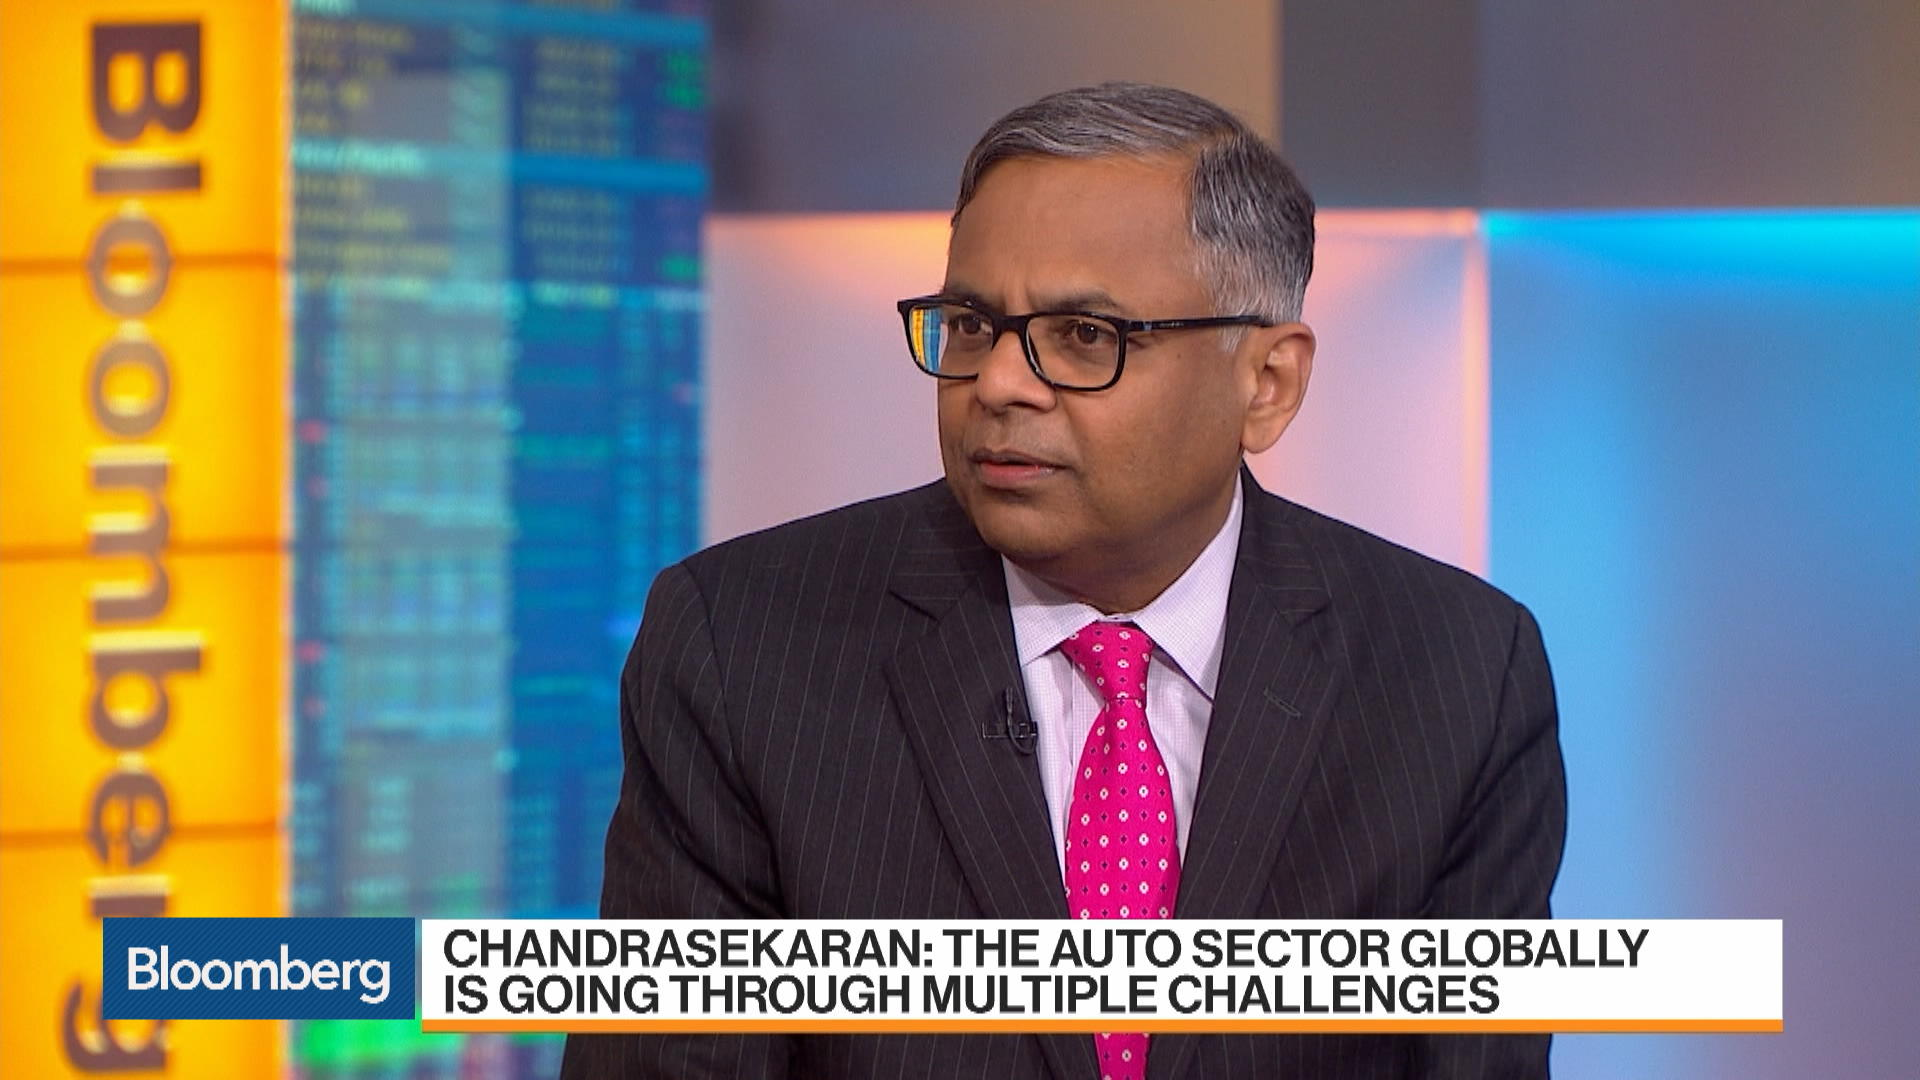 Tata Seeking Partnerships Like Deal With BMW: Natarajan Chandrasekaran